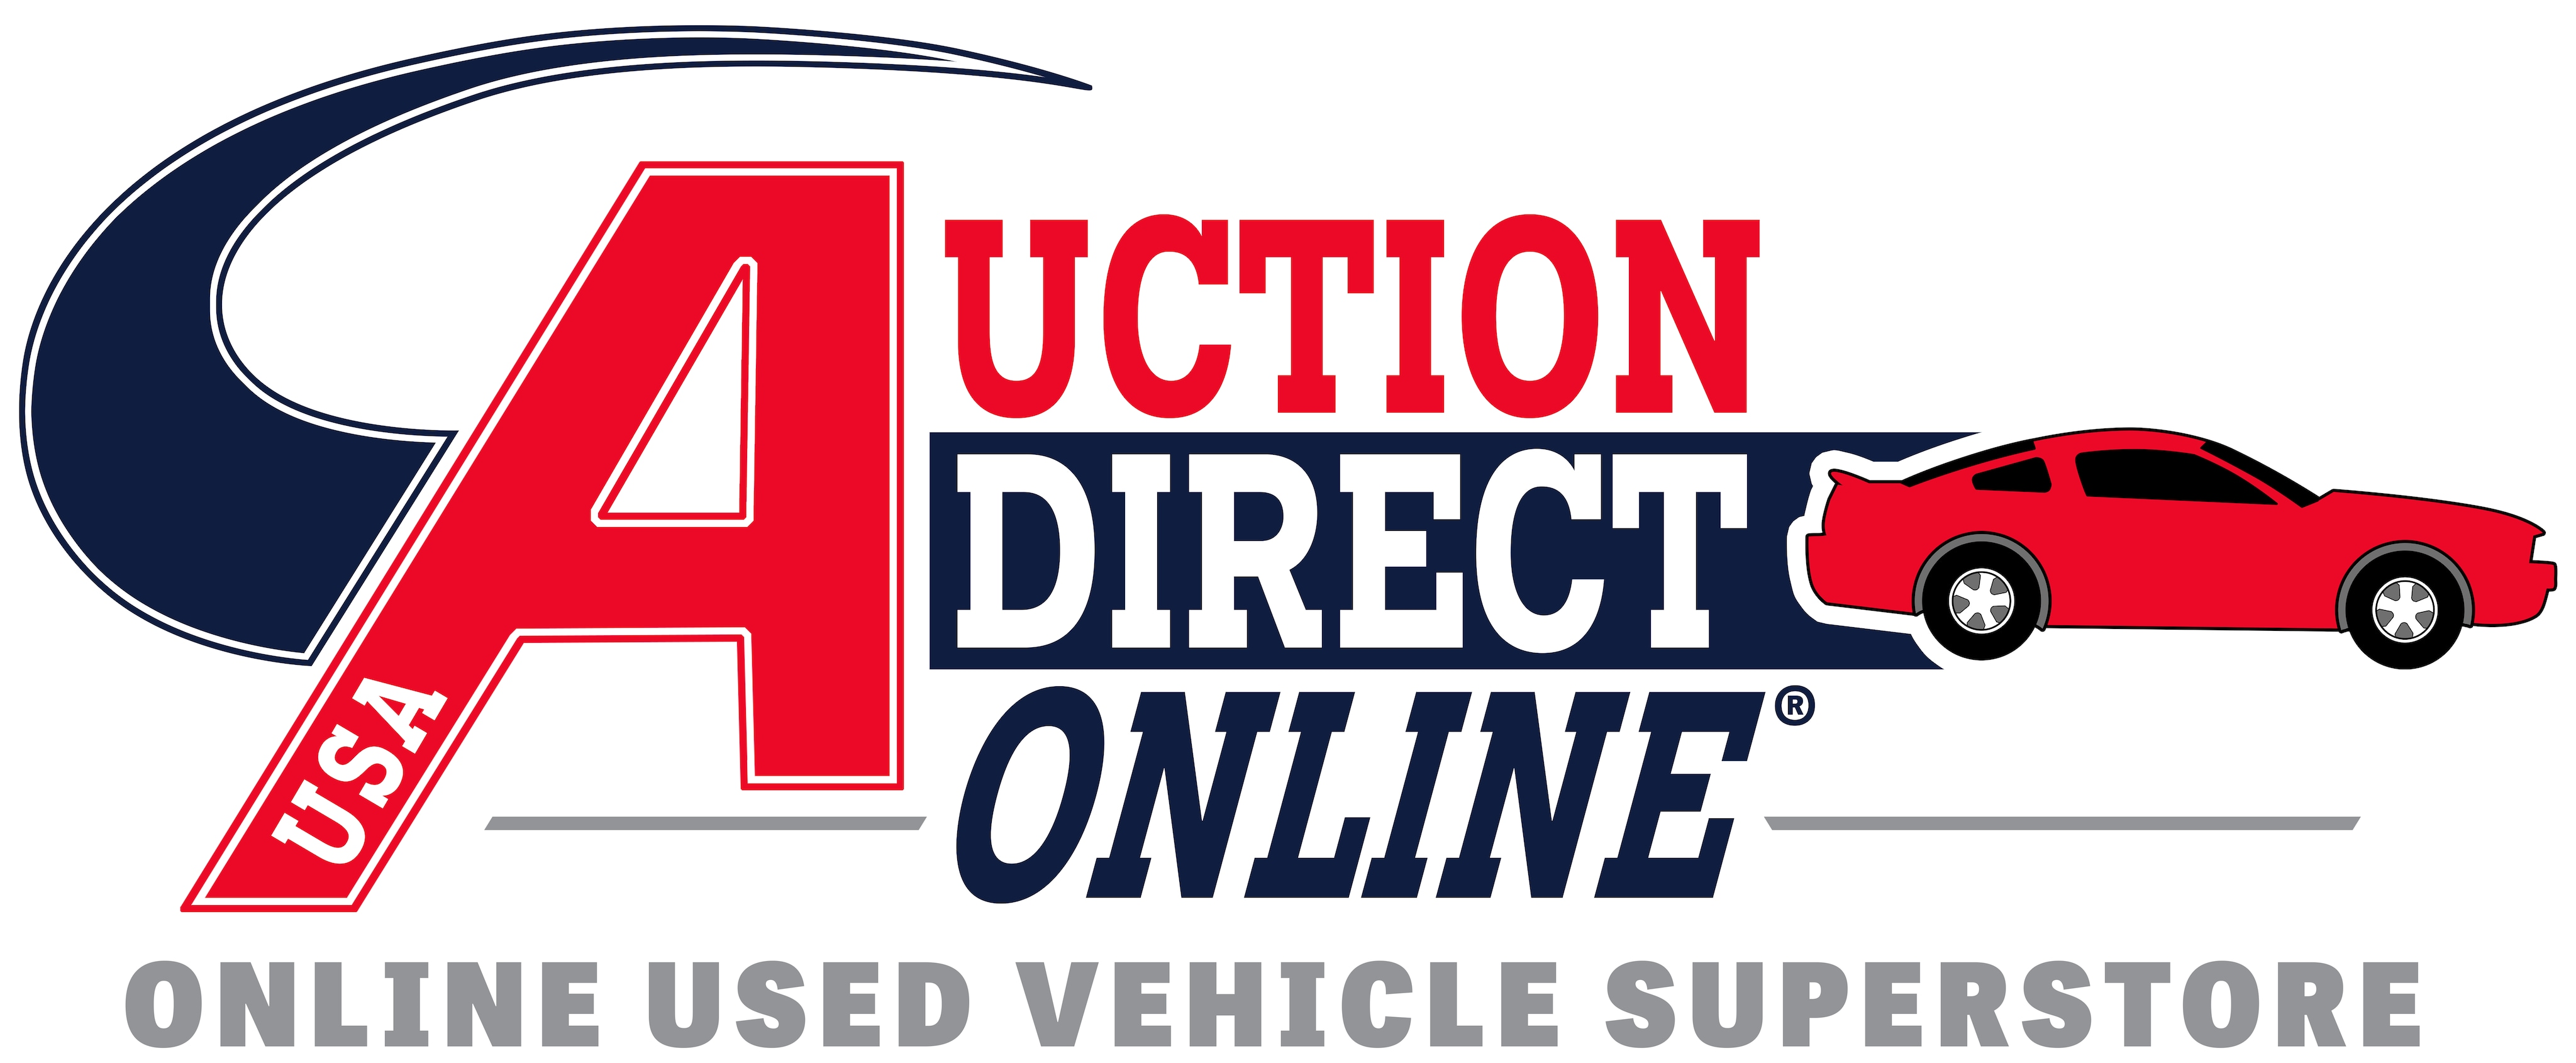 About Auction Direct